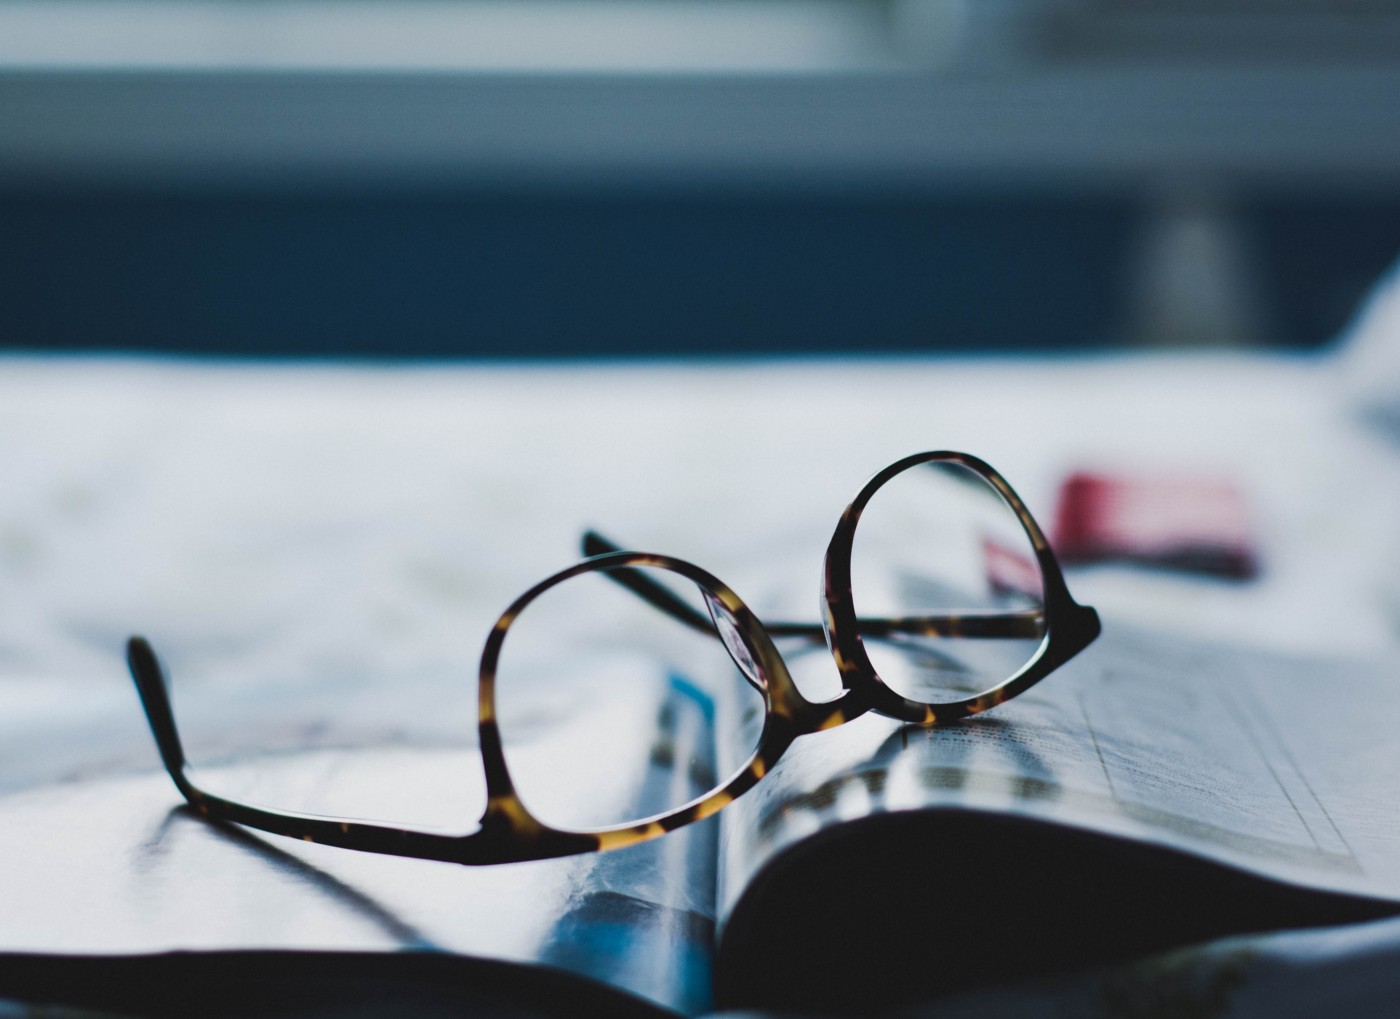 pair of dark-framed eyeglasses placed upside down on a magazine or book.